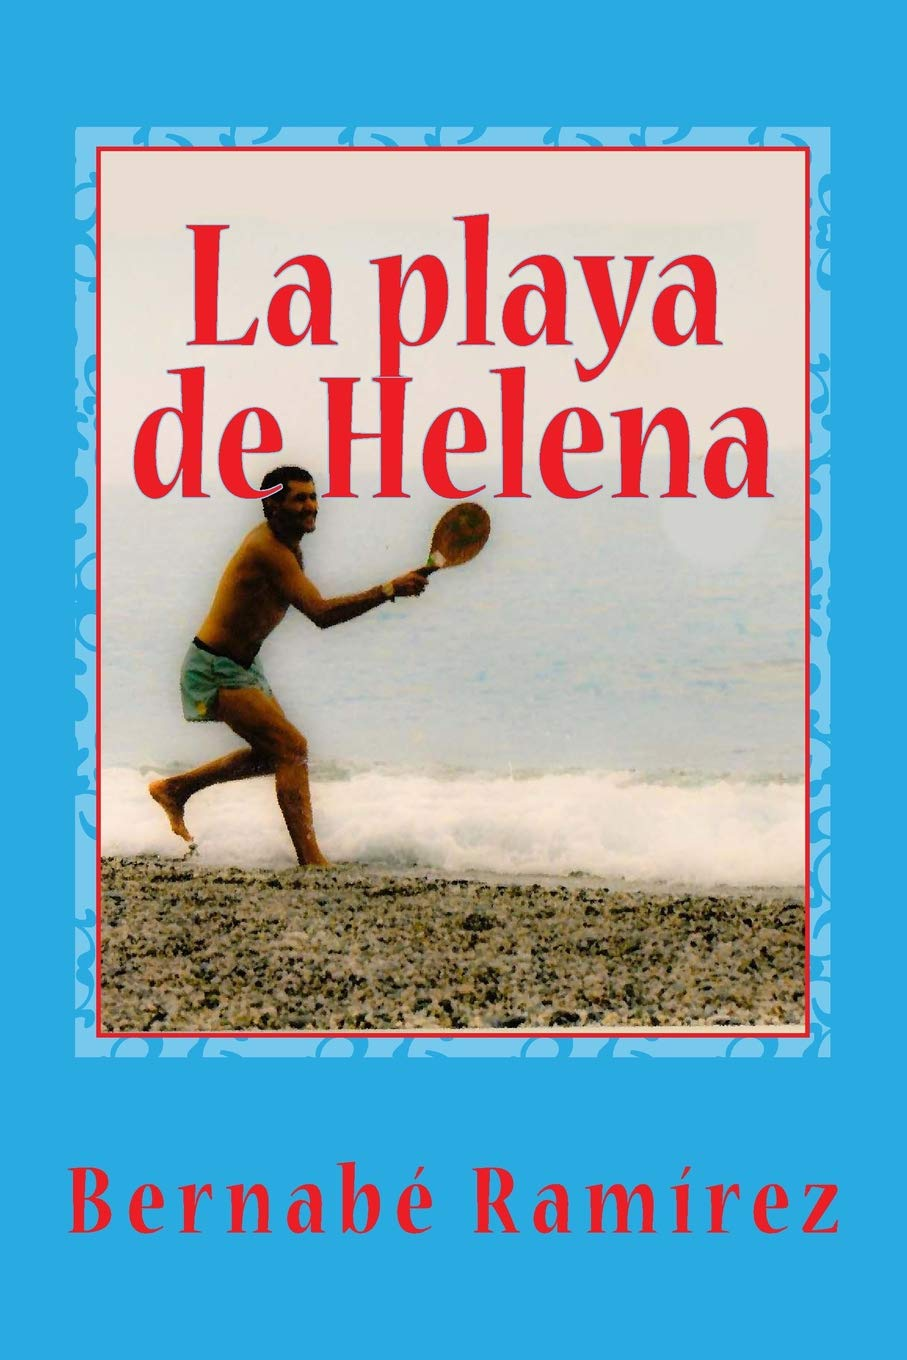 La playa de Helena (Spanish Edition) (Spanish) Paperback – July 12, 2017